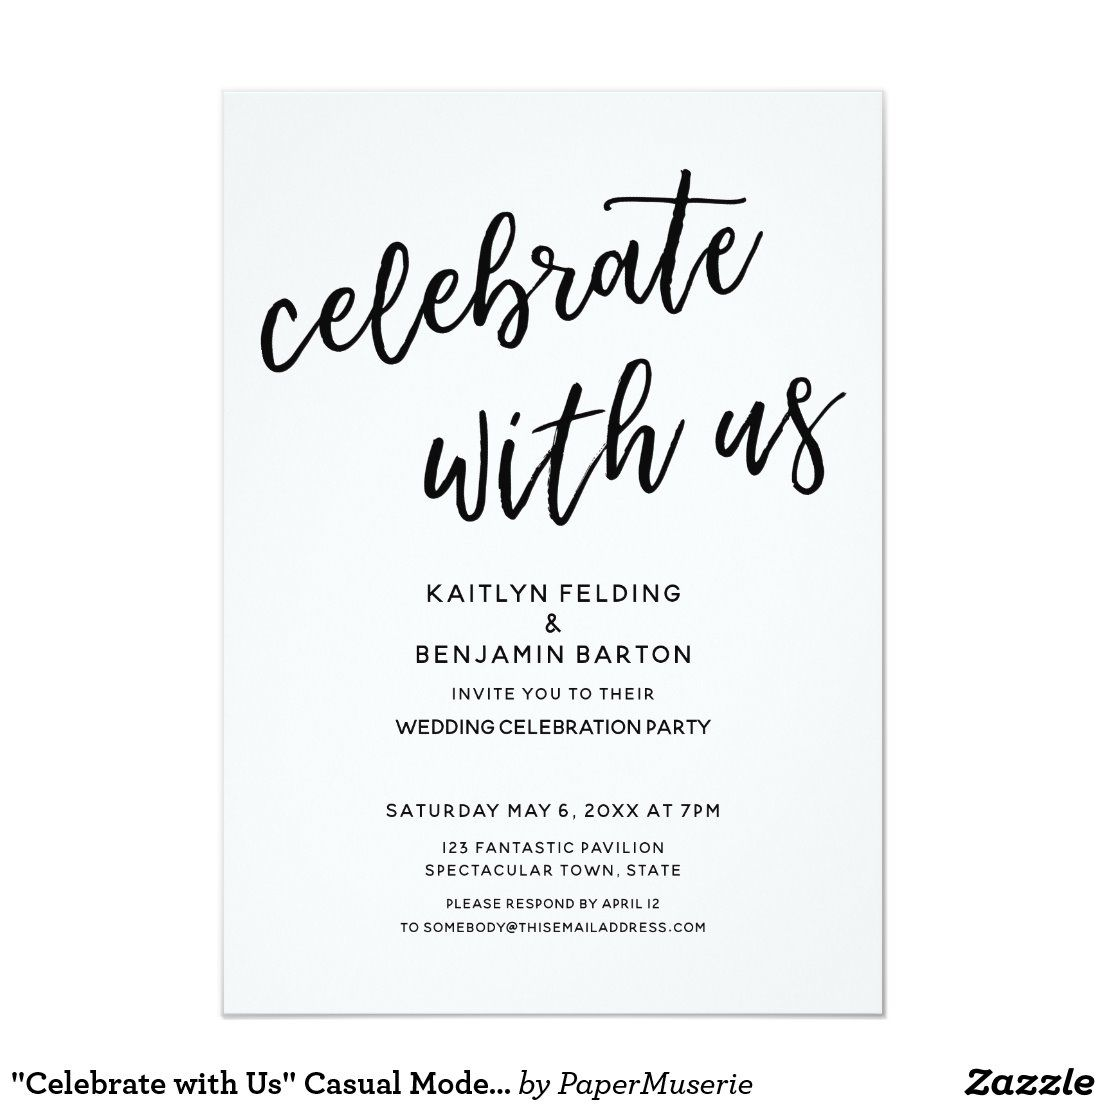 Celebrate With Us Casual Modern Wedding Party Invitation Zazzle Com Wedding Party Invites Casual Wedding Invitations Modern Wedding Invitations Templates